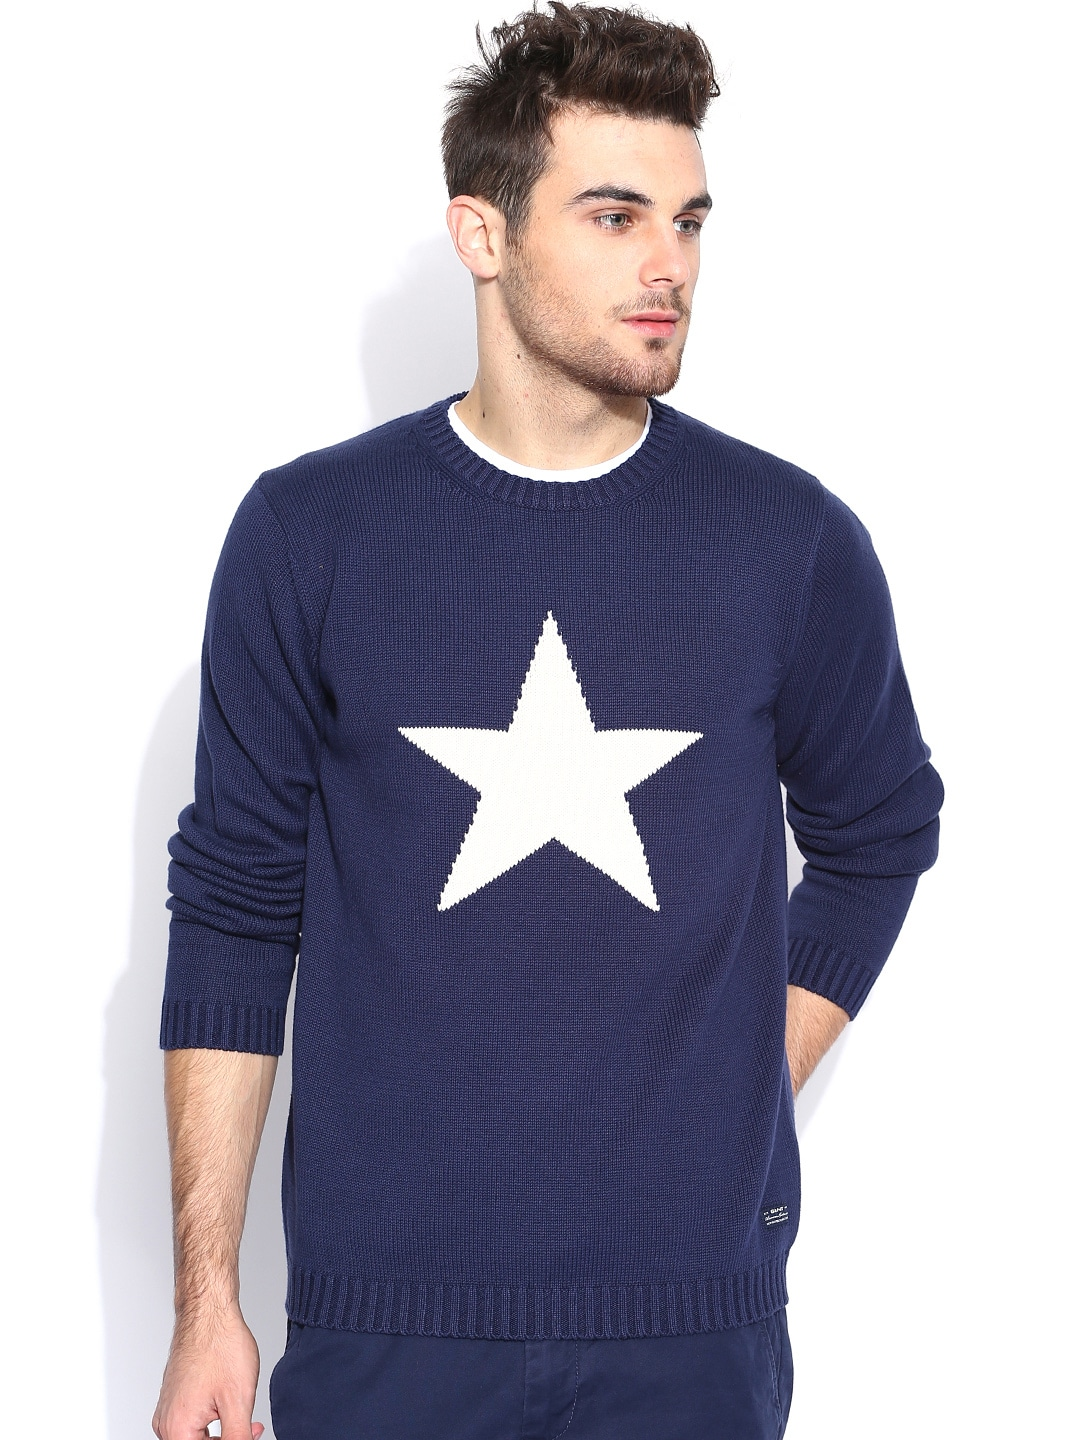 GANT Blue Sweater